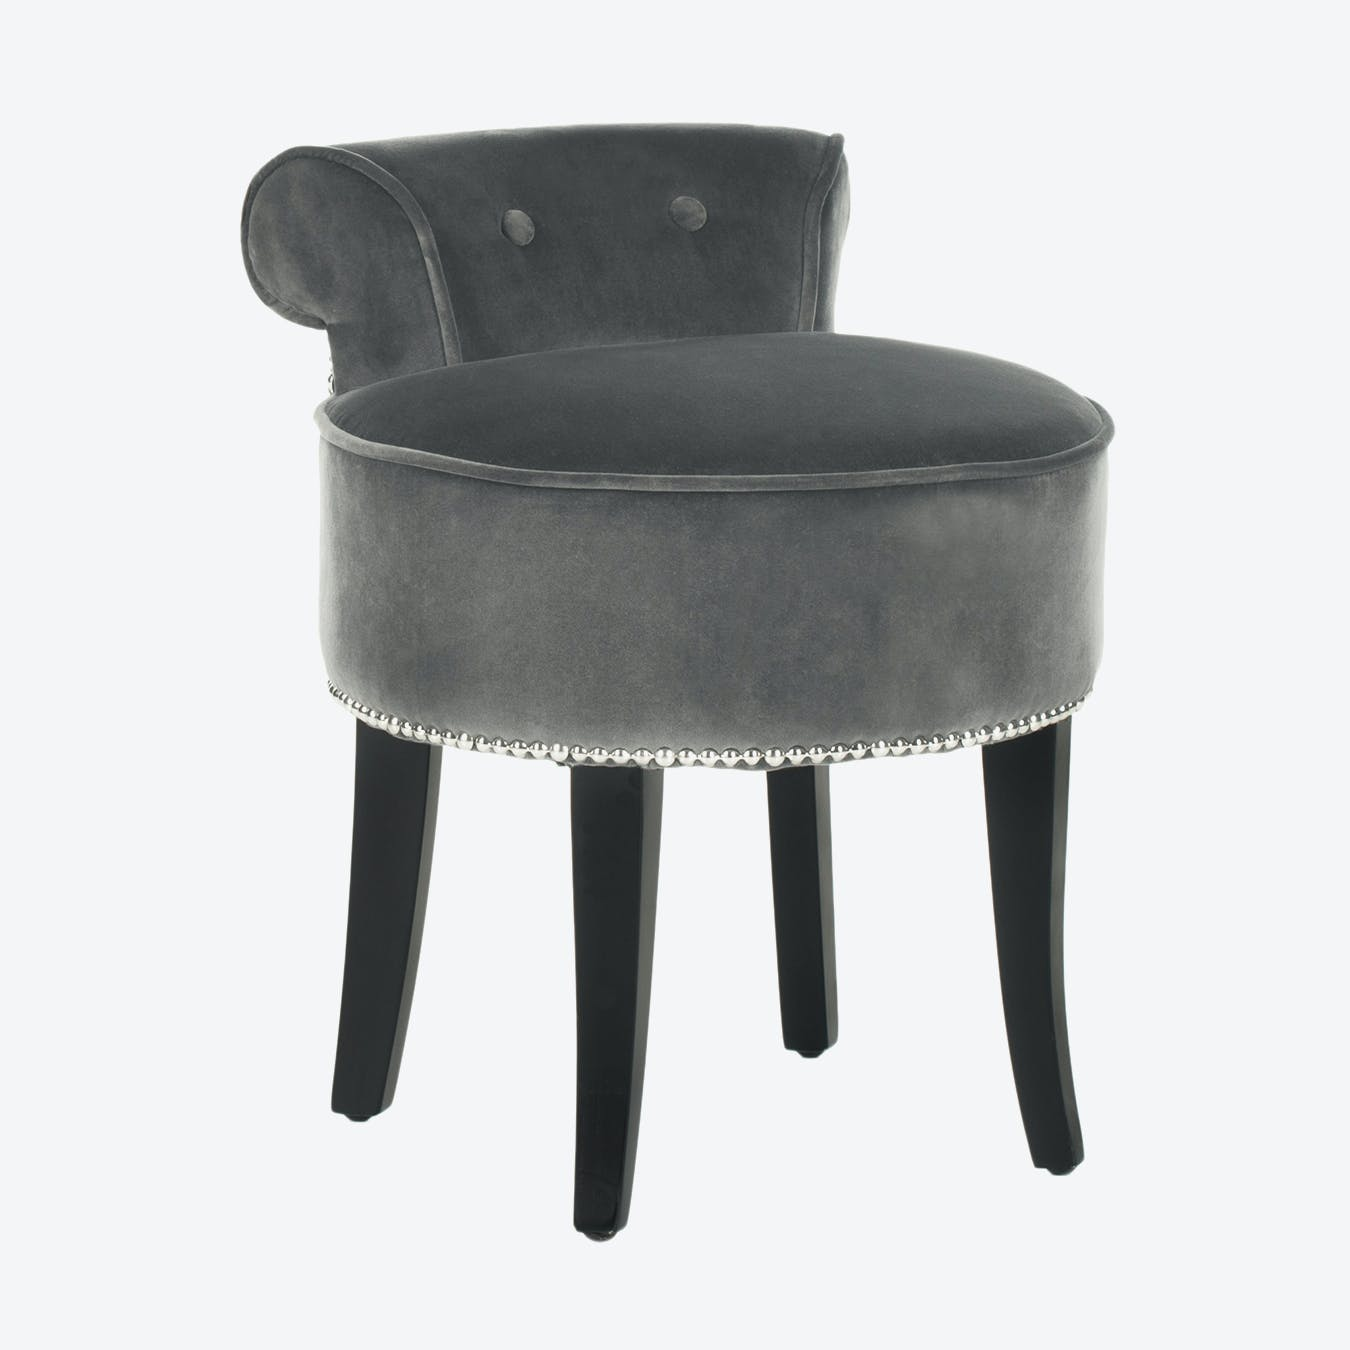 Upholstered Vanity Stool Anthracite Grey By Safavieh Fy